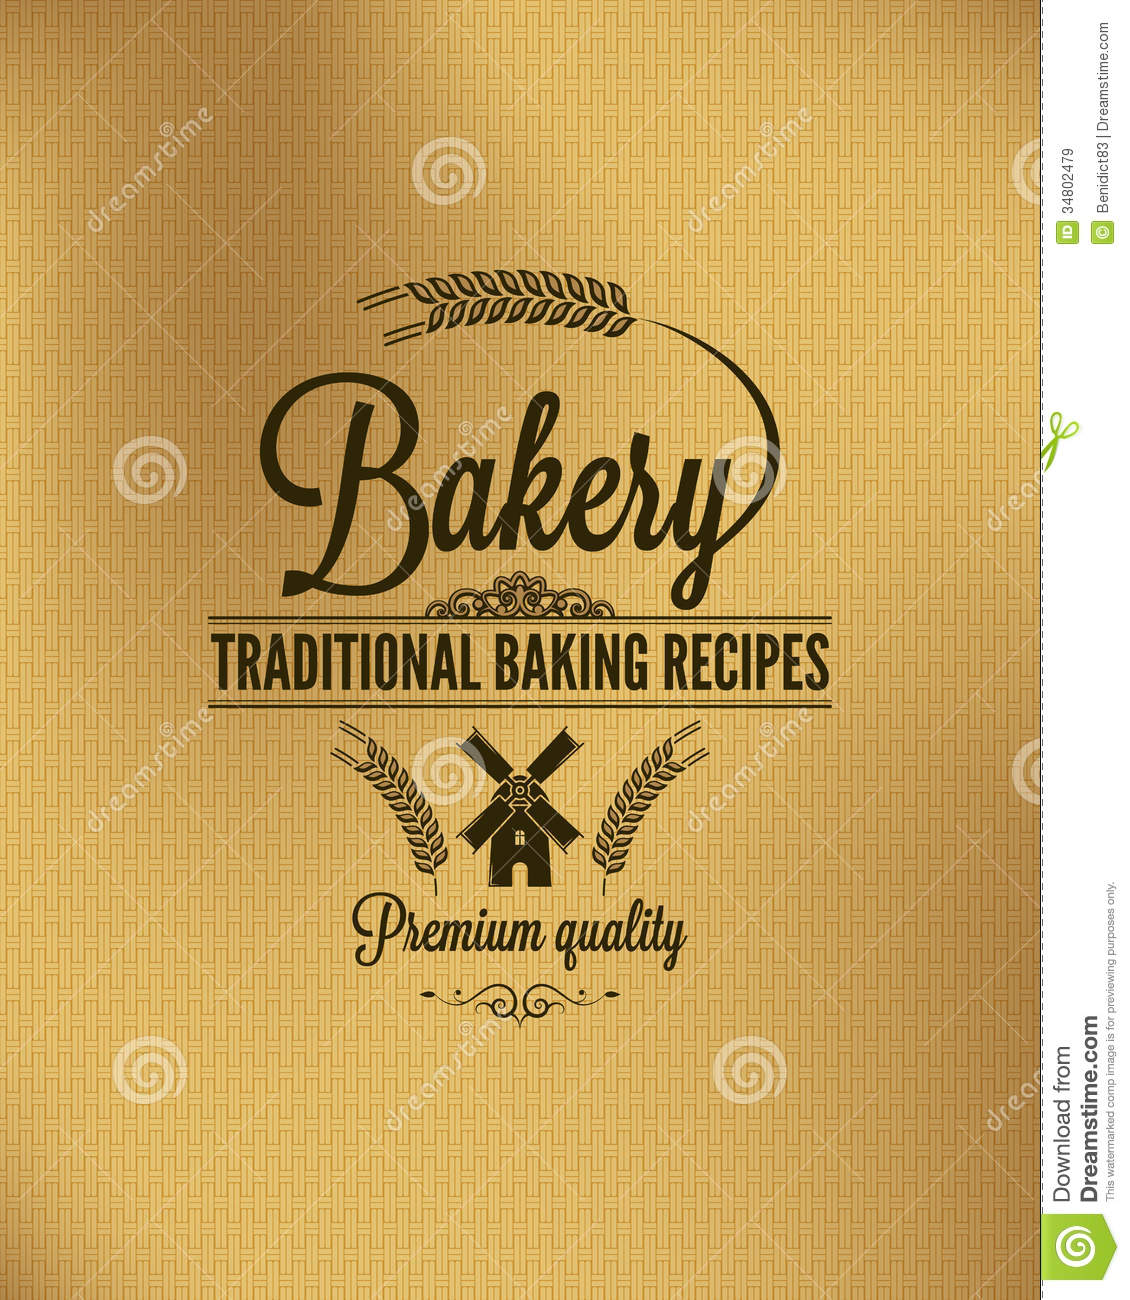 Bakery Vintage Bread Label Background Royalty Free Stock